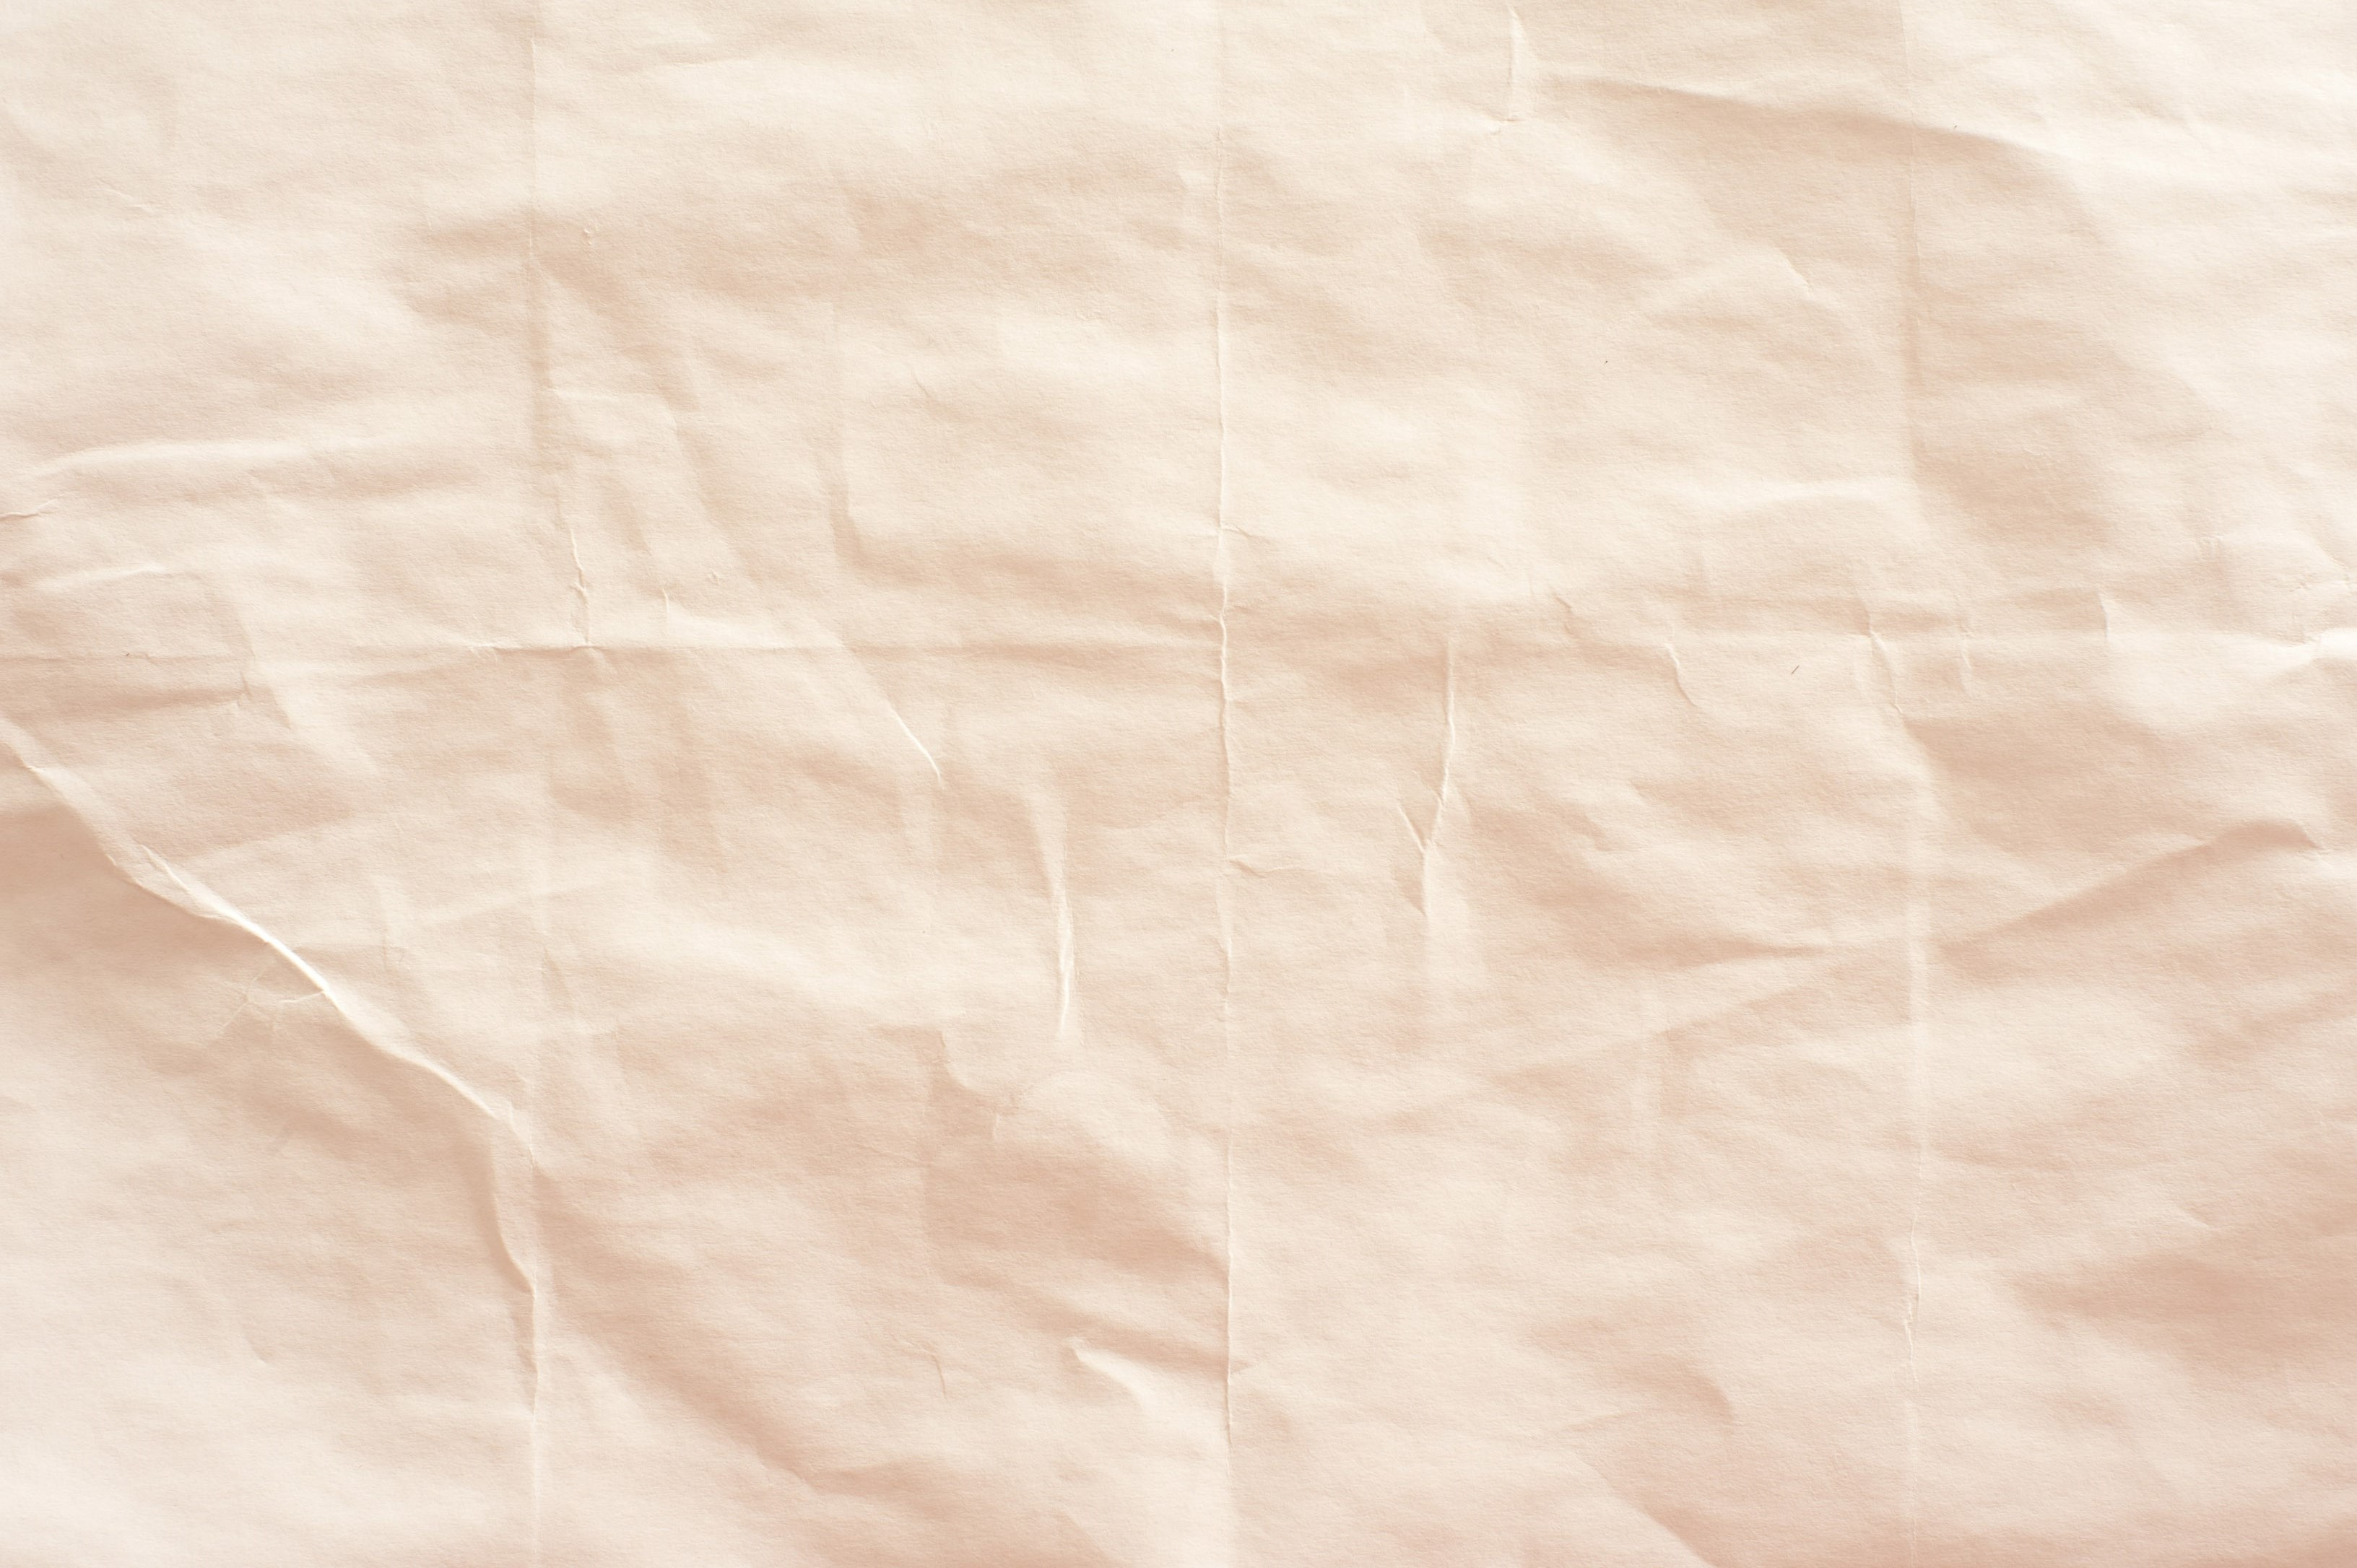 wrinkled paper free backgrounds and textures cr103 com